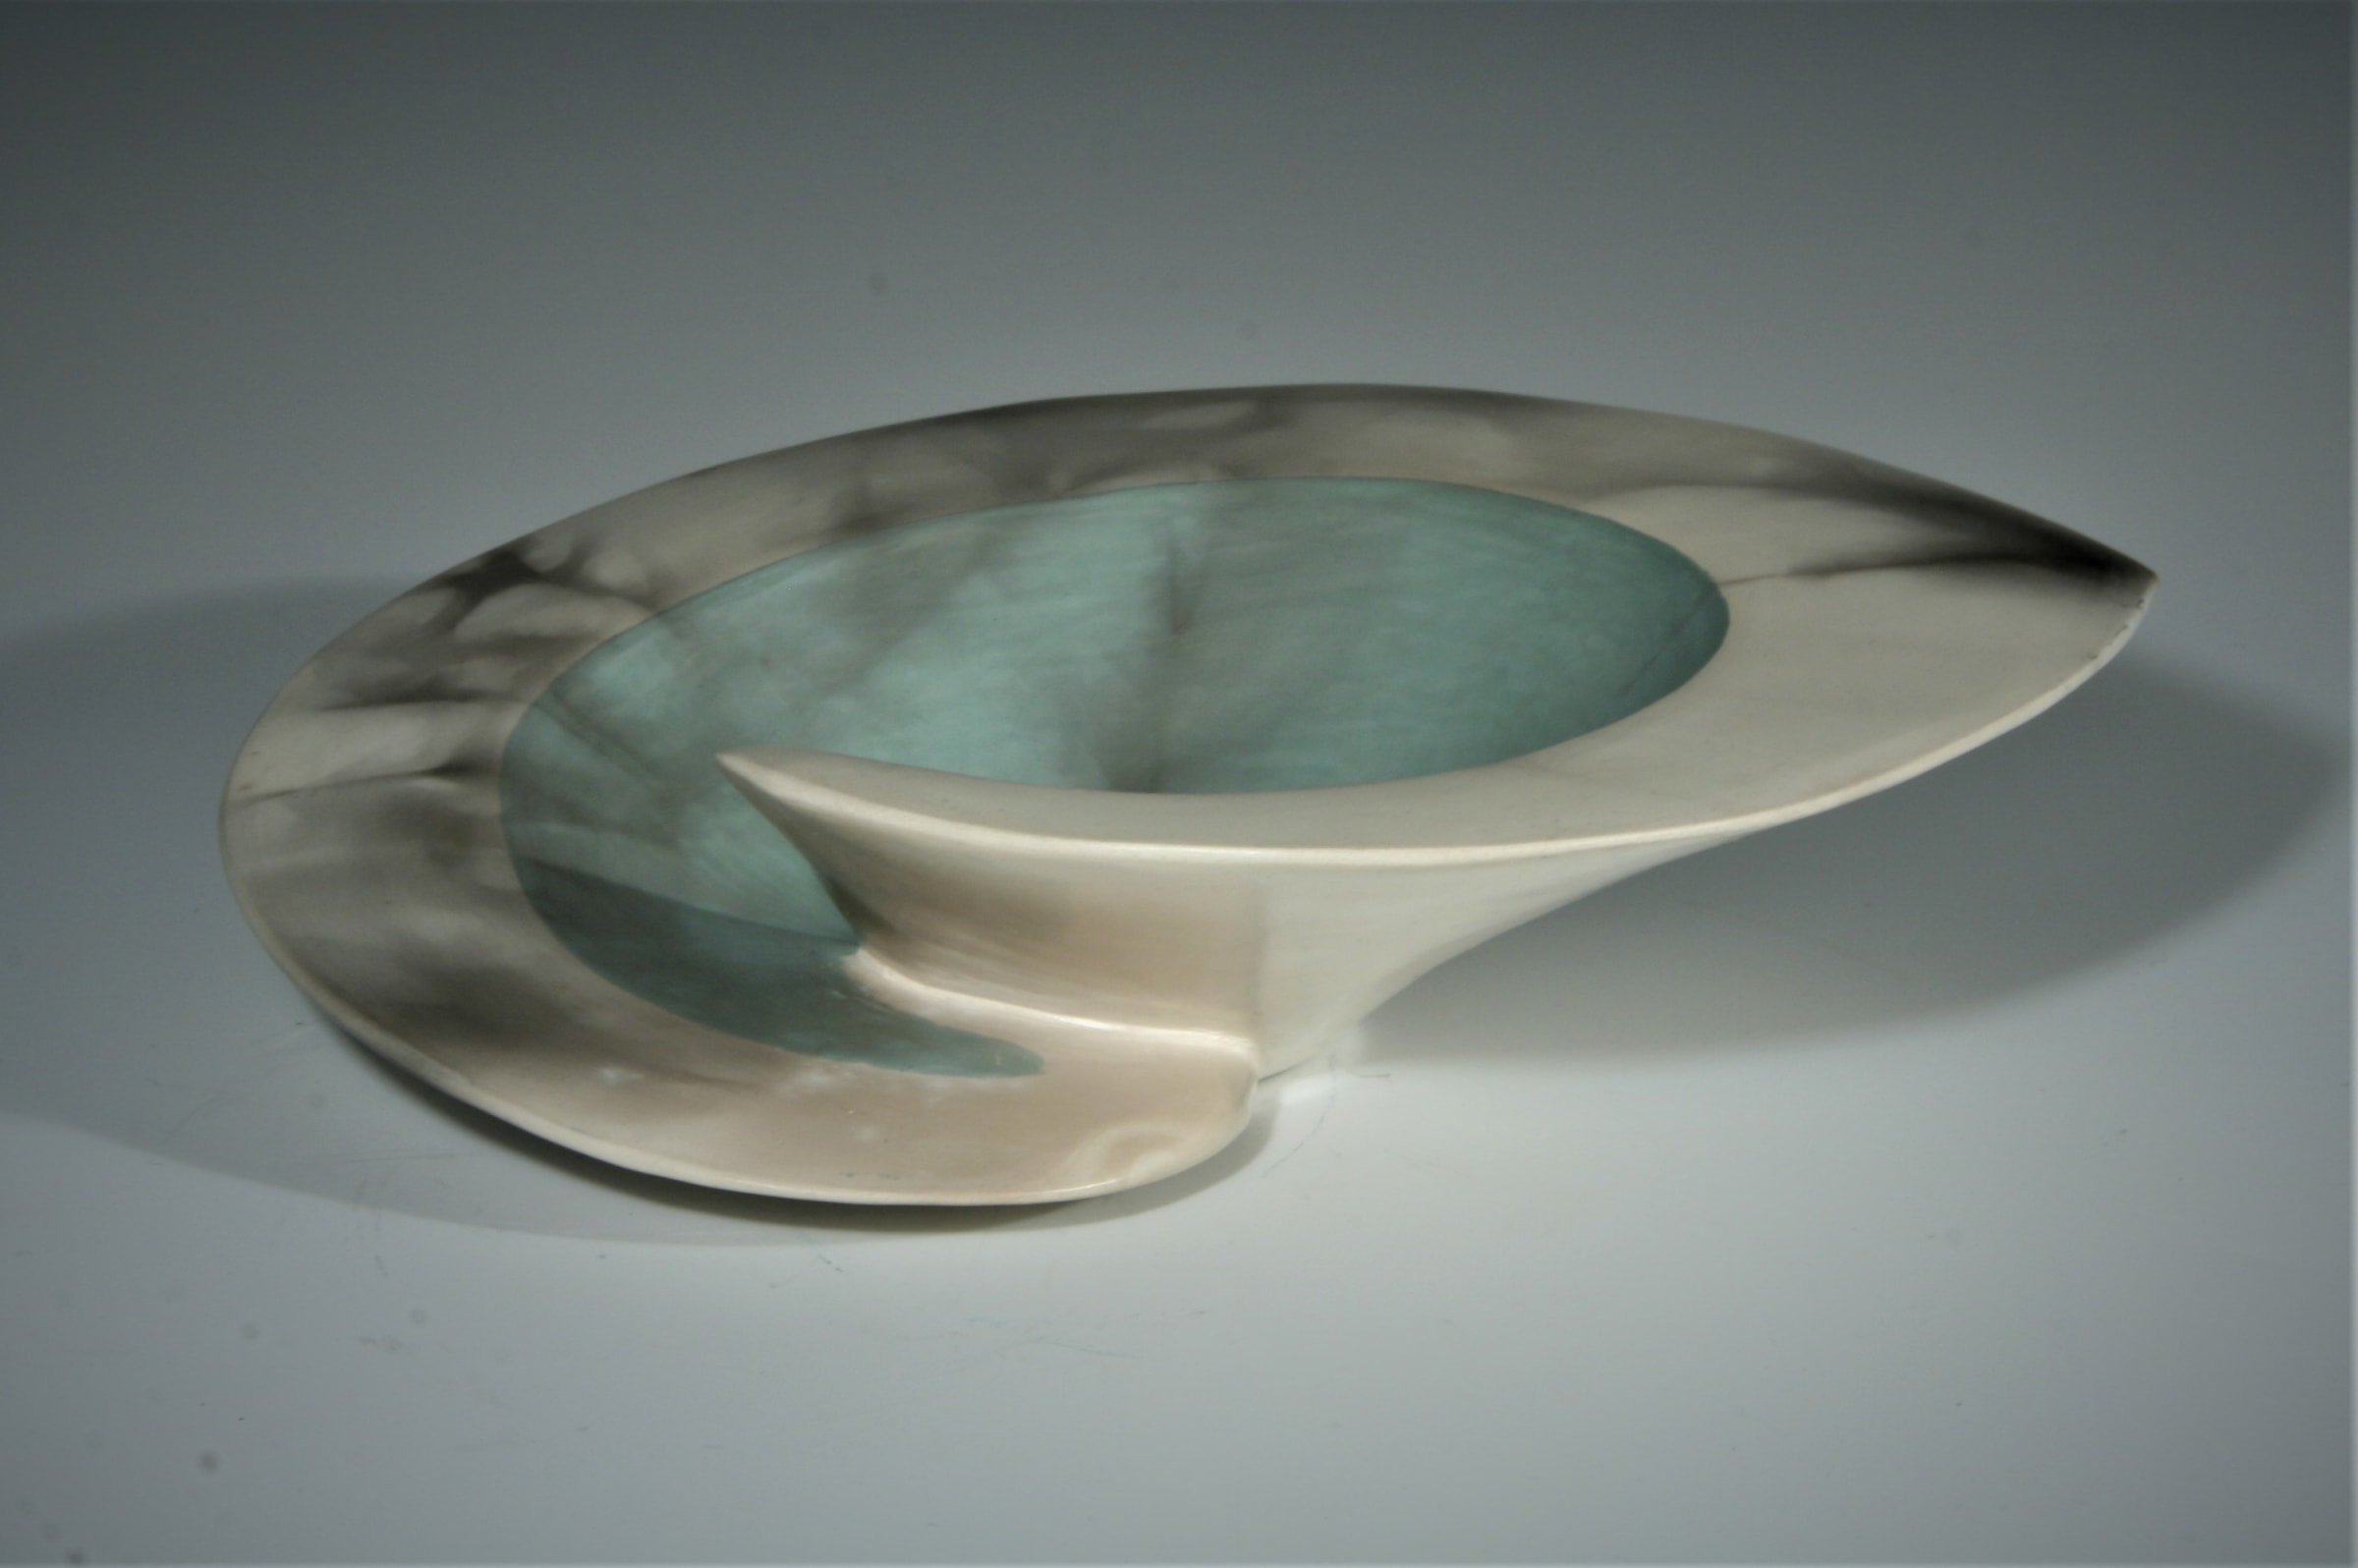 """<span class=""""link fancybox-details-link""""><a href=""""/artists/38-antonia-salmon/works/6048-antonia-salmon-dervish-bowl-green-2018/"""">View Detail Page</a></span><div class=""""artist""""><strong>Antonia Salmon</strong></div> b. 1959 <div class=""""title""""><em>Dervish Bowl Green</em>, 2018</div> <div class=""""signed_and_dated"""">stamped AS</div> <div class=""""medium"""">ceramic</div><div class=""""copyright_line"""">Copyright The Artist</div>"""